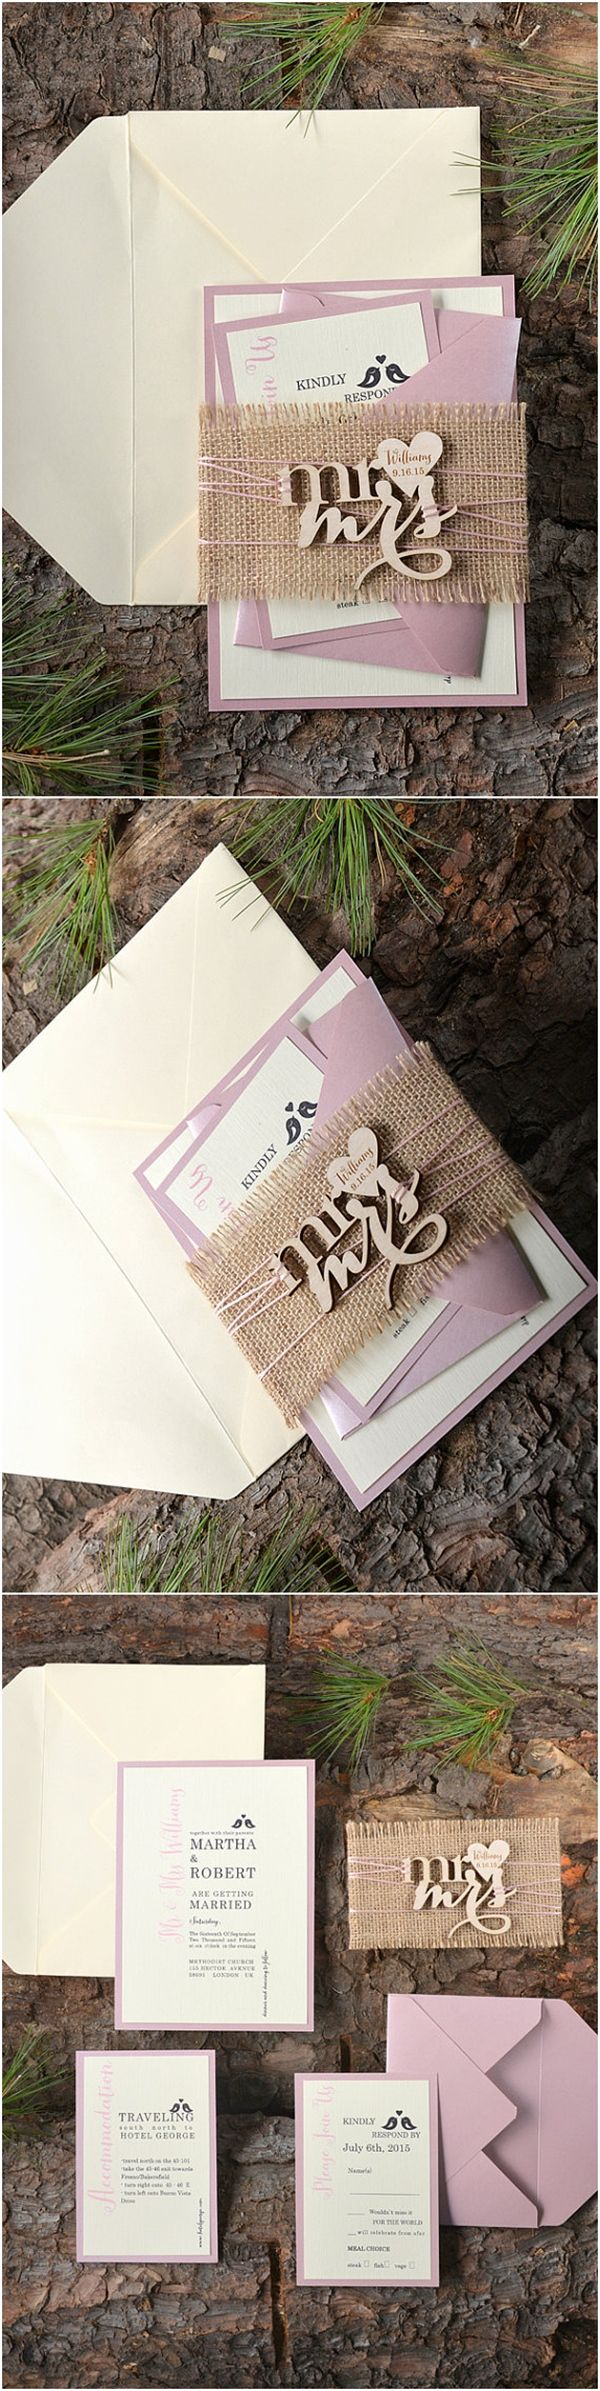 Rustic Wood Birds Burlap Pink Wedding Invitations - Deer Pearl Flowers